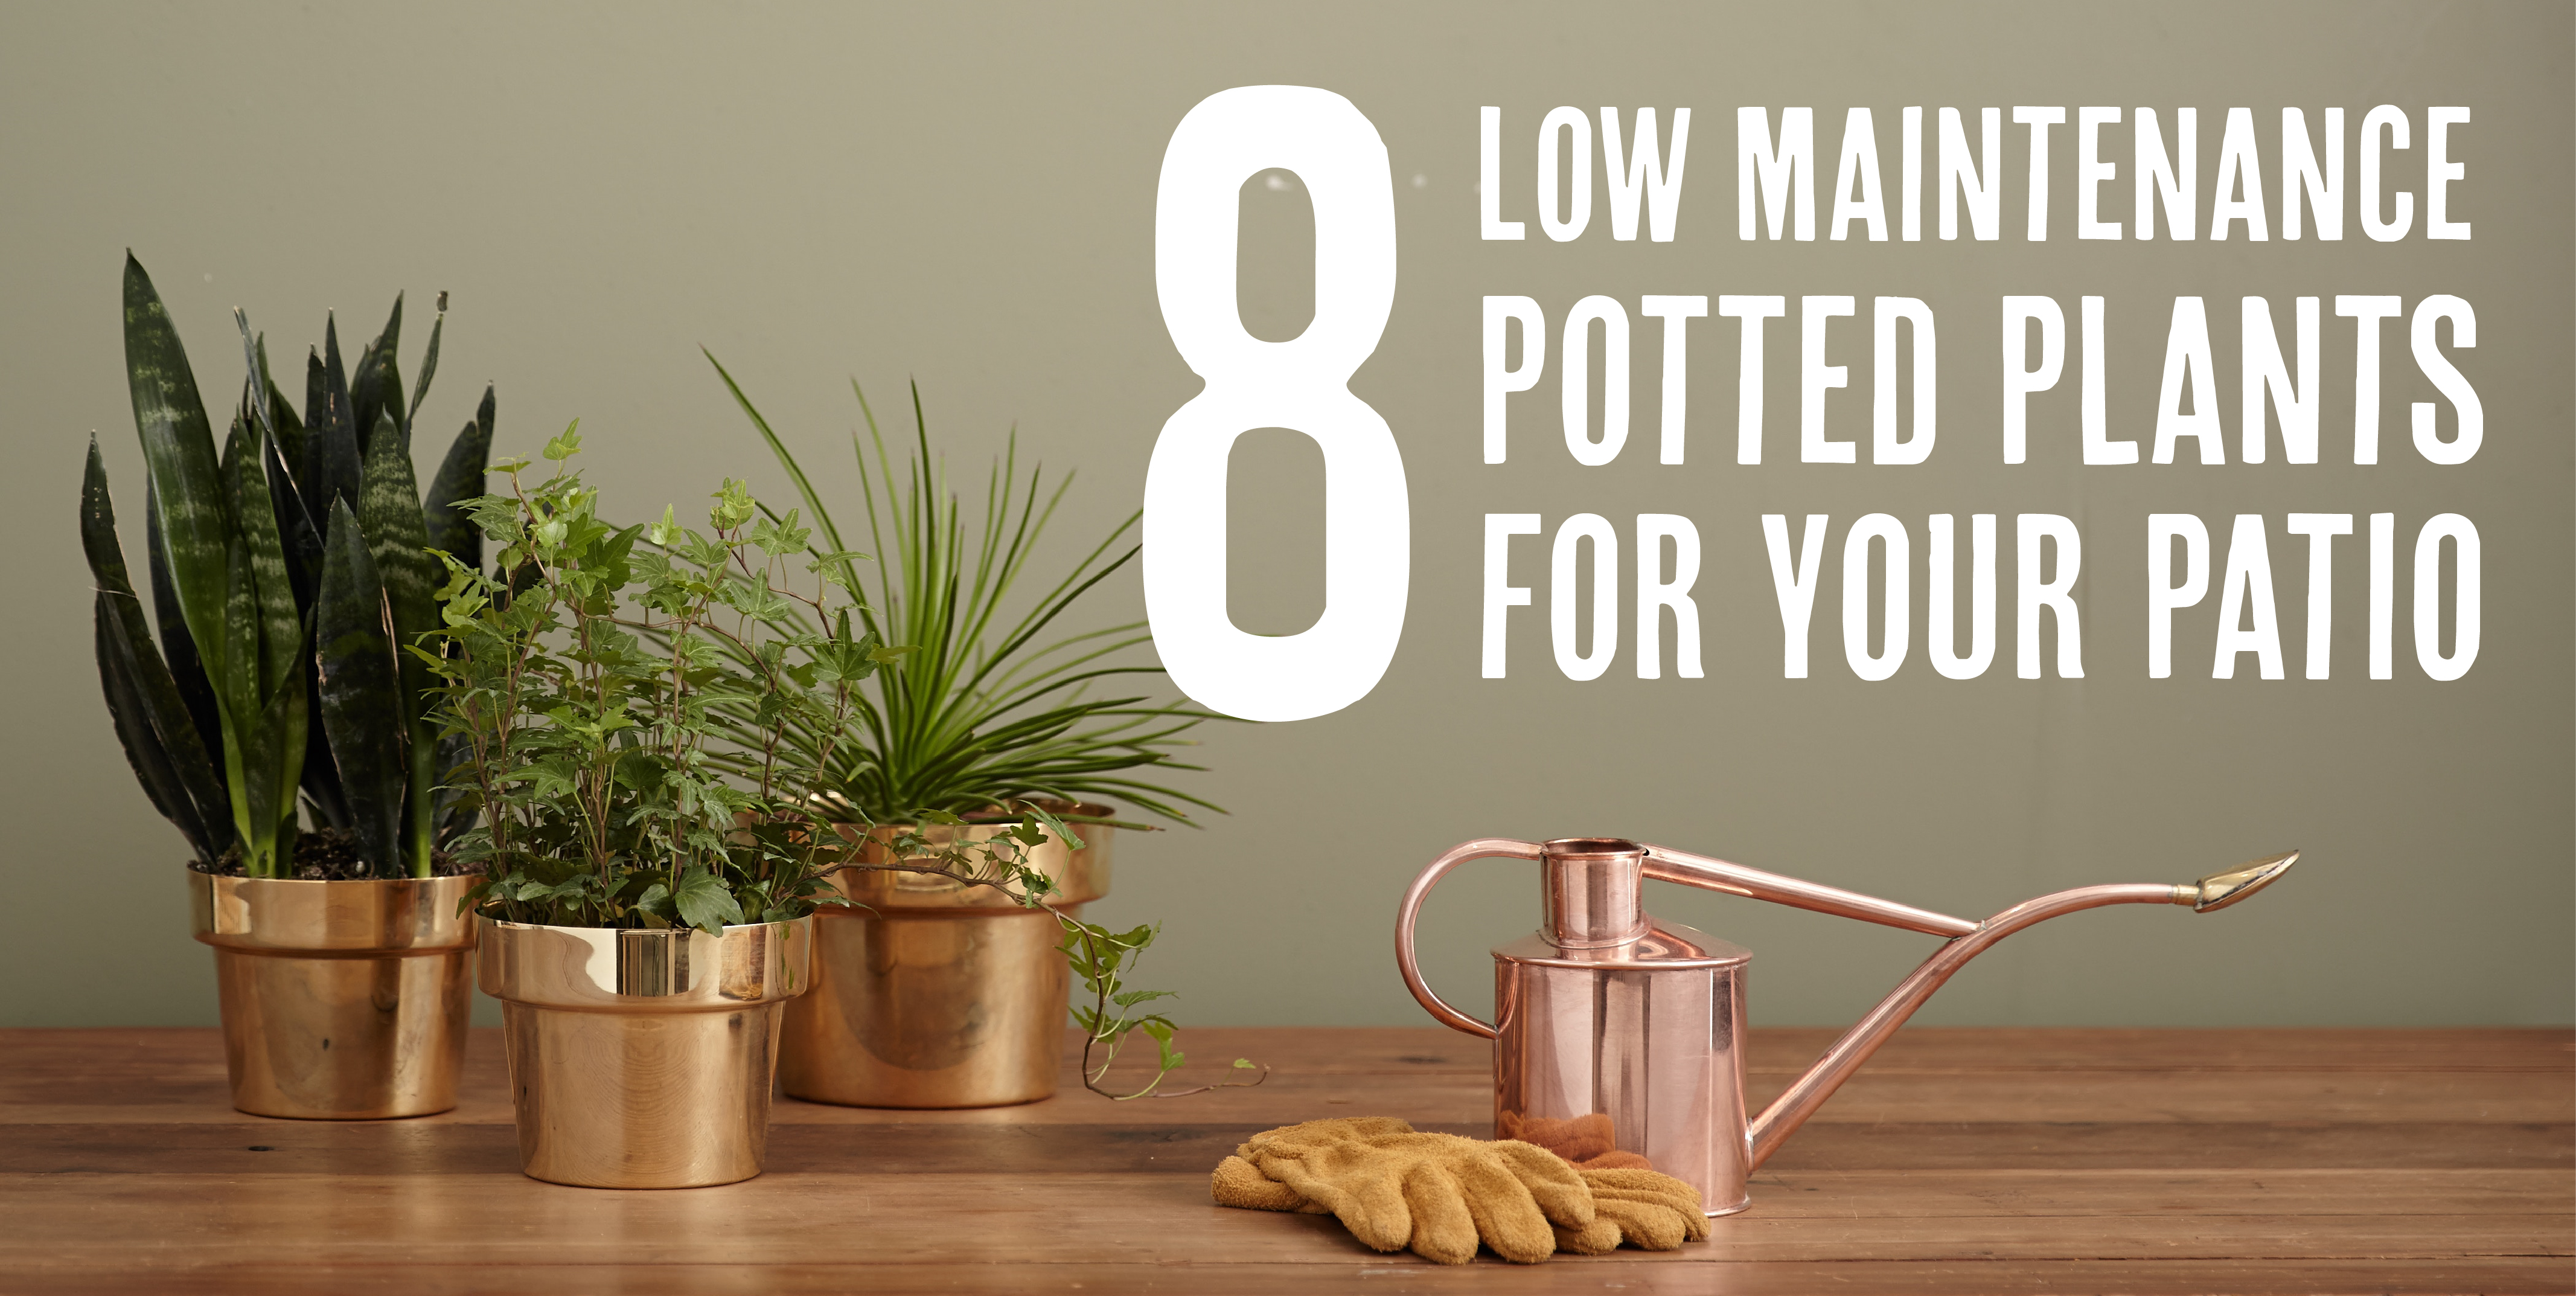 8 low maintenance potted plants for